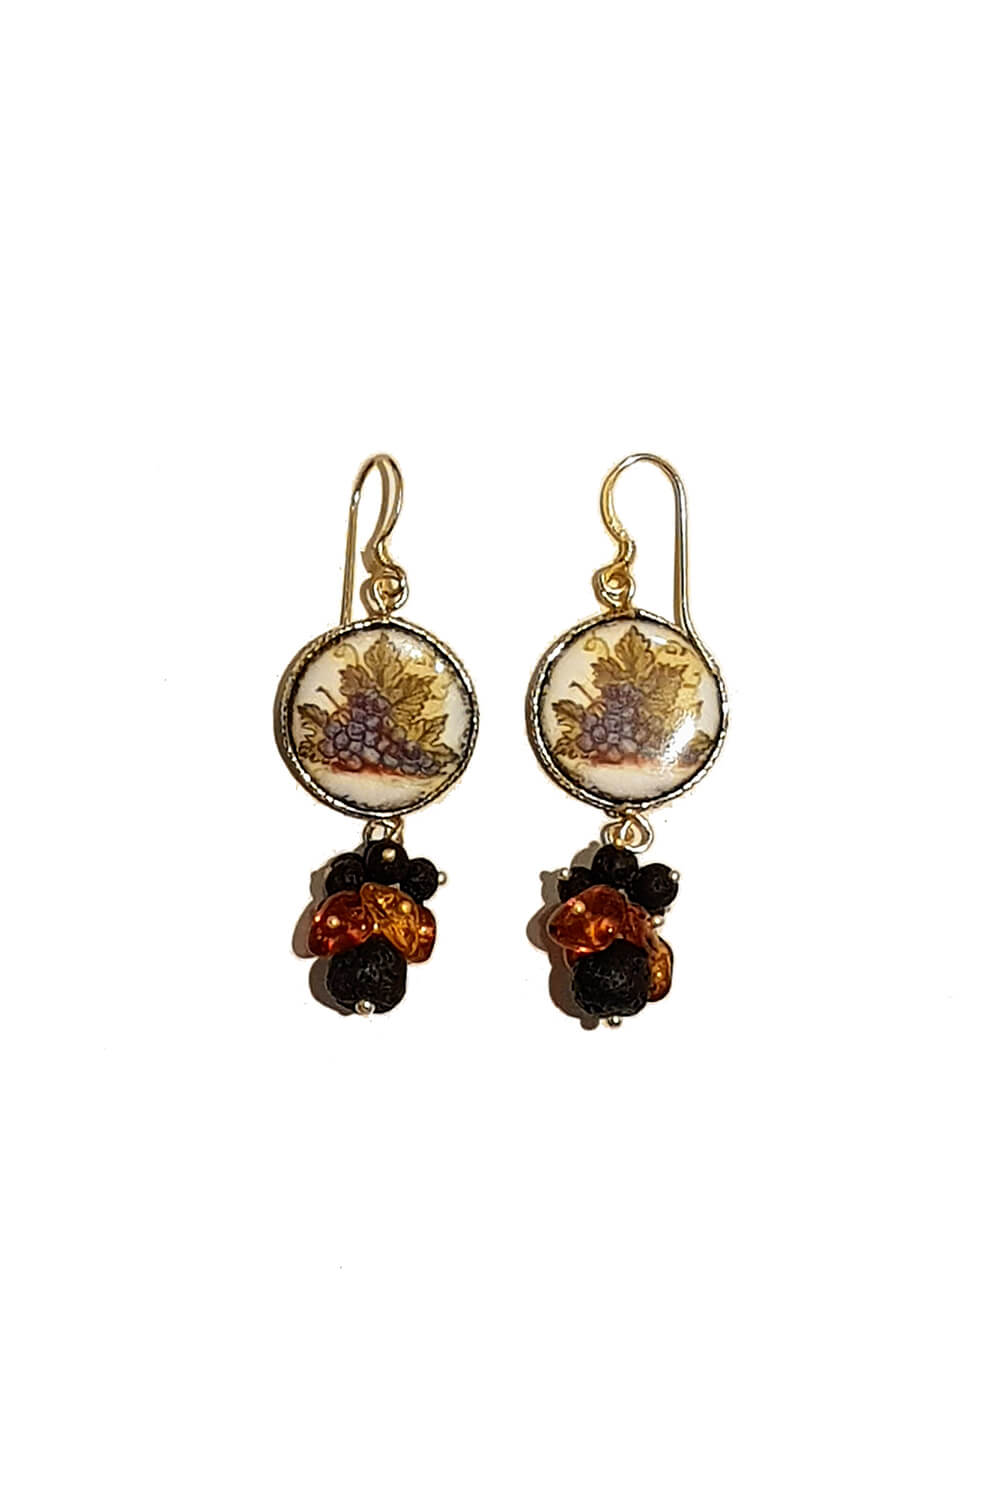 earrings with amber and painted grapes on ceramics UVE